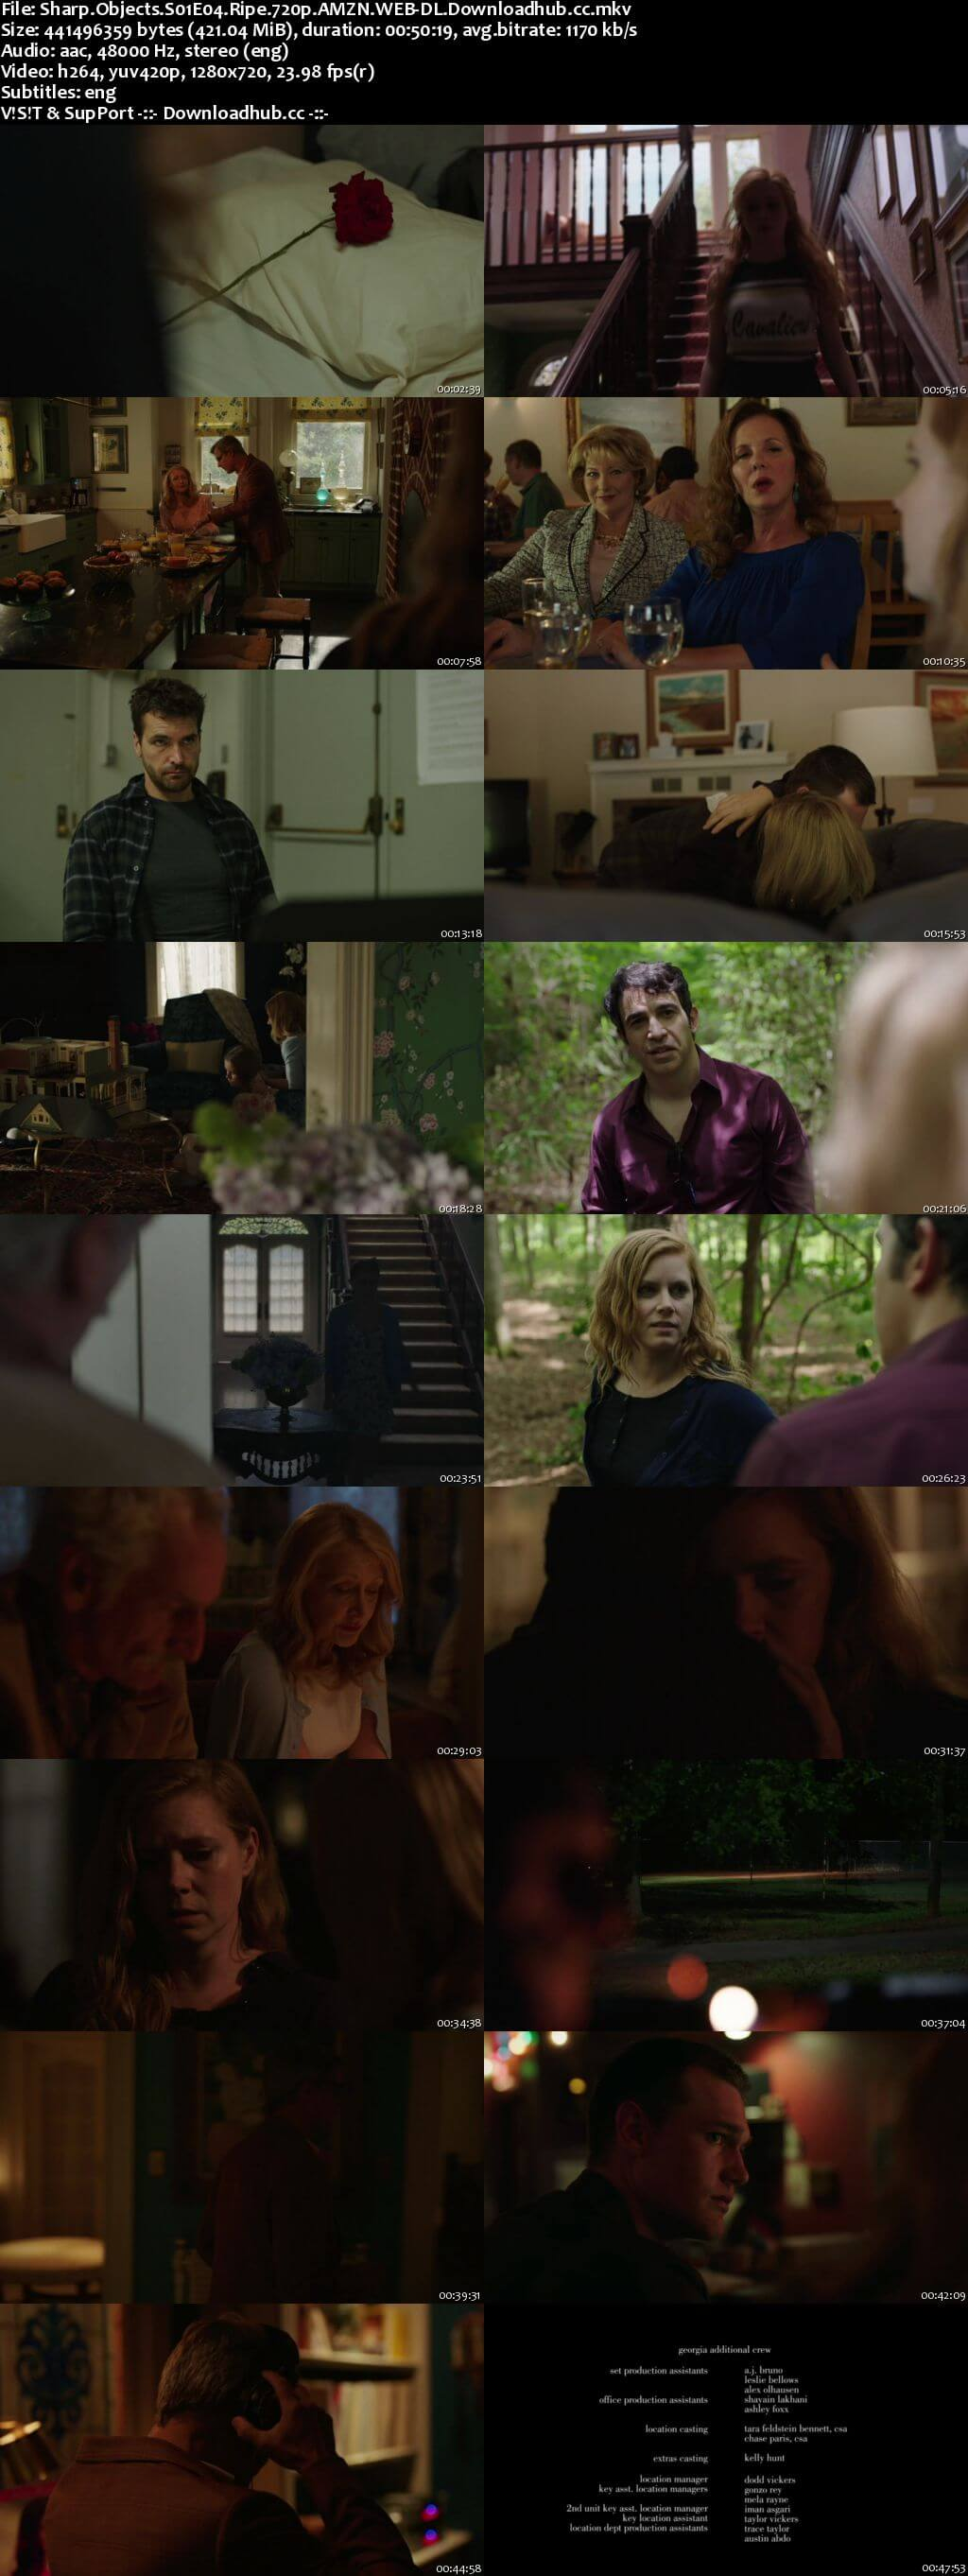 Sharp Objects S01E04 400MB WEB-DL 720p ESubs